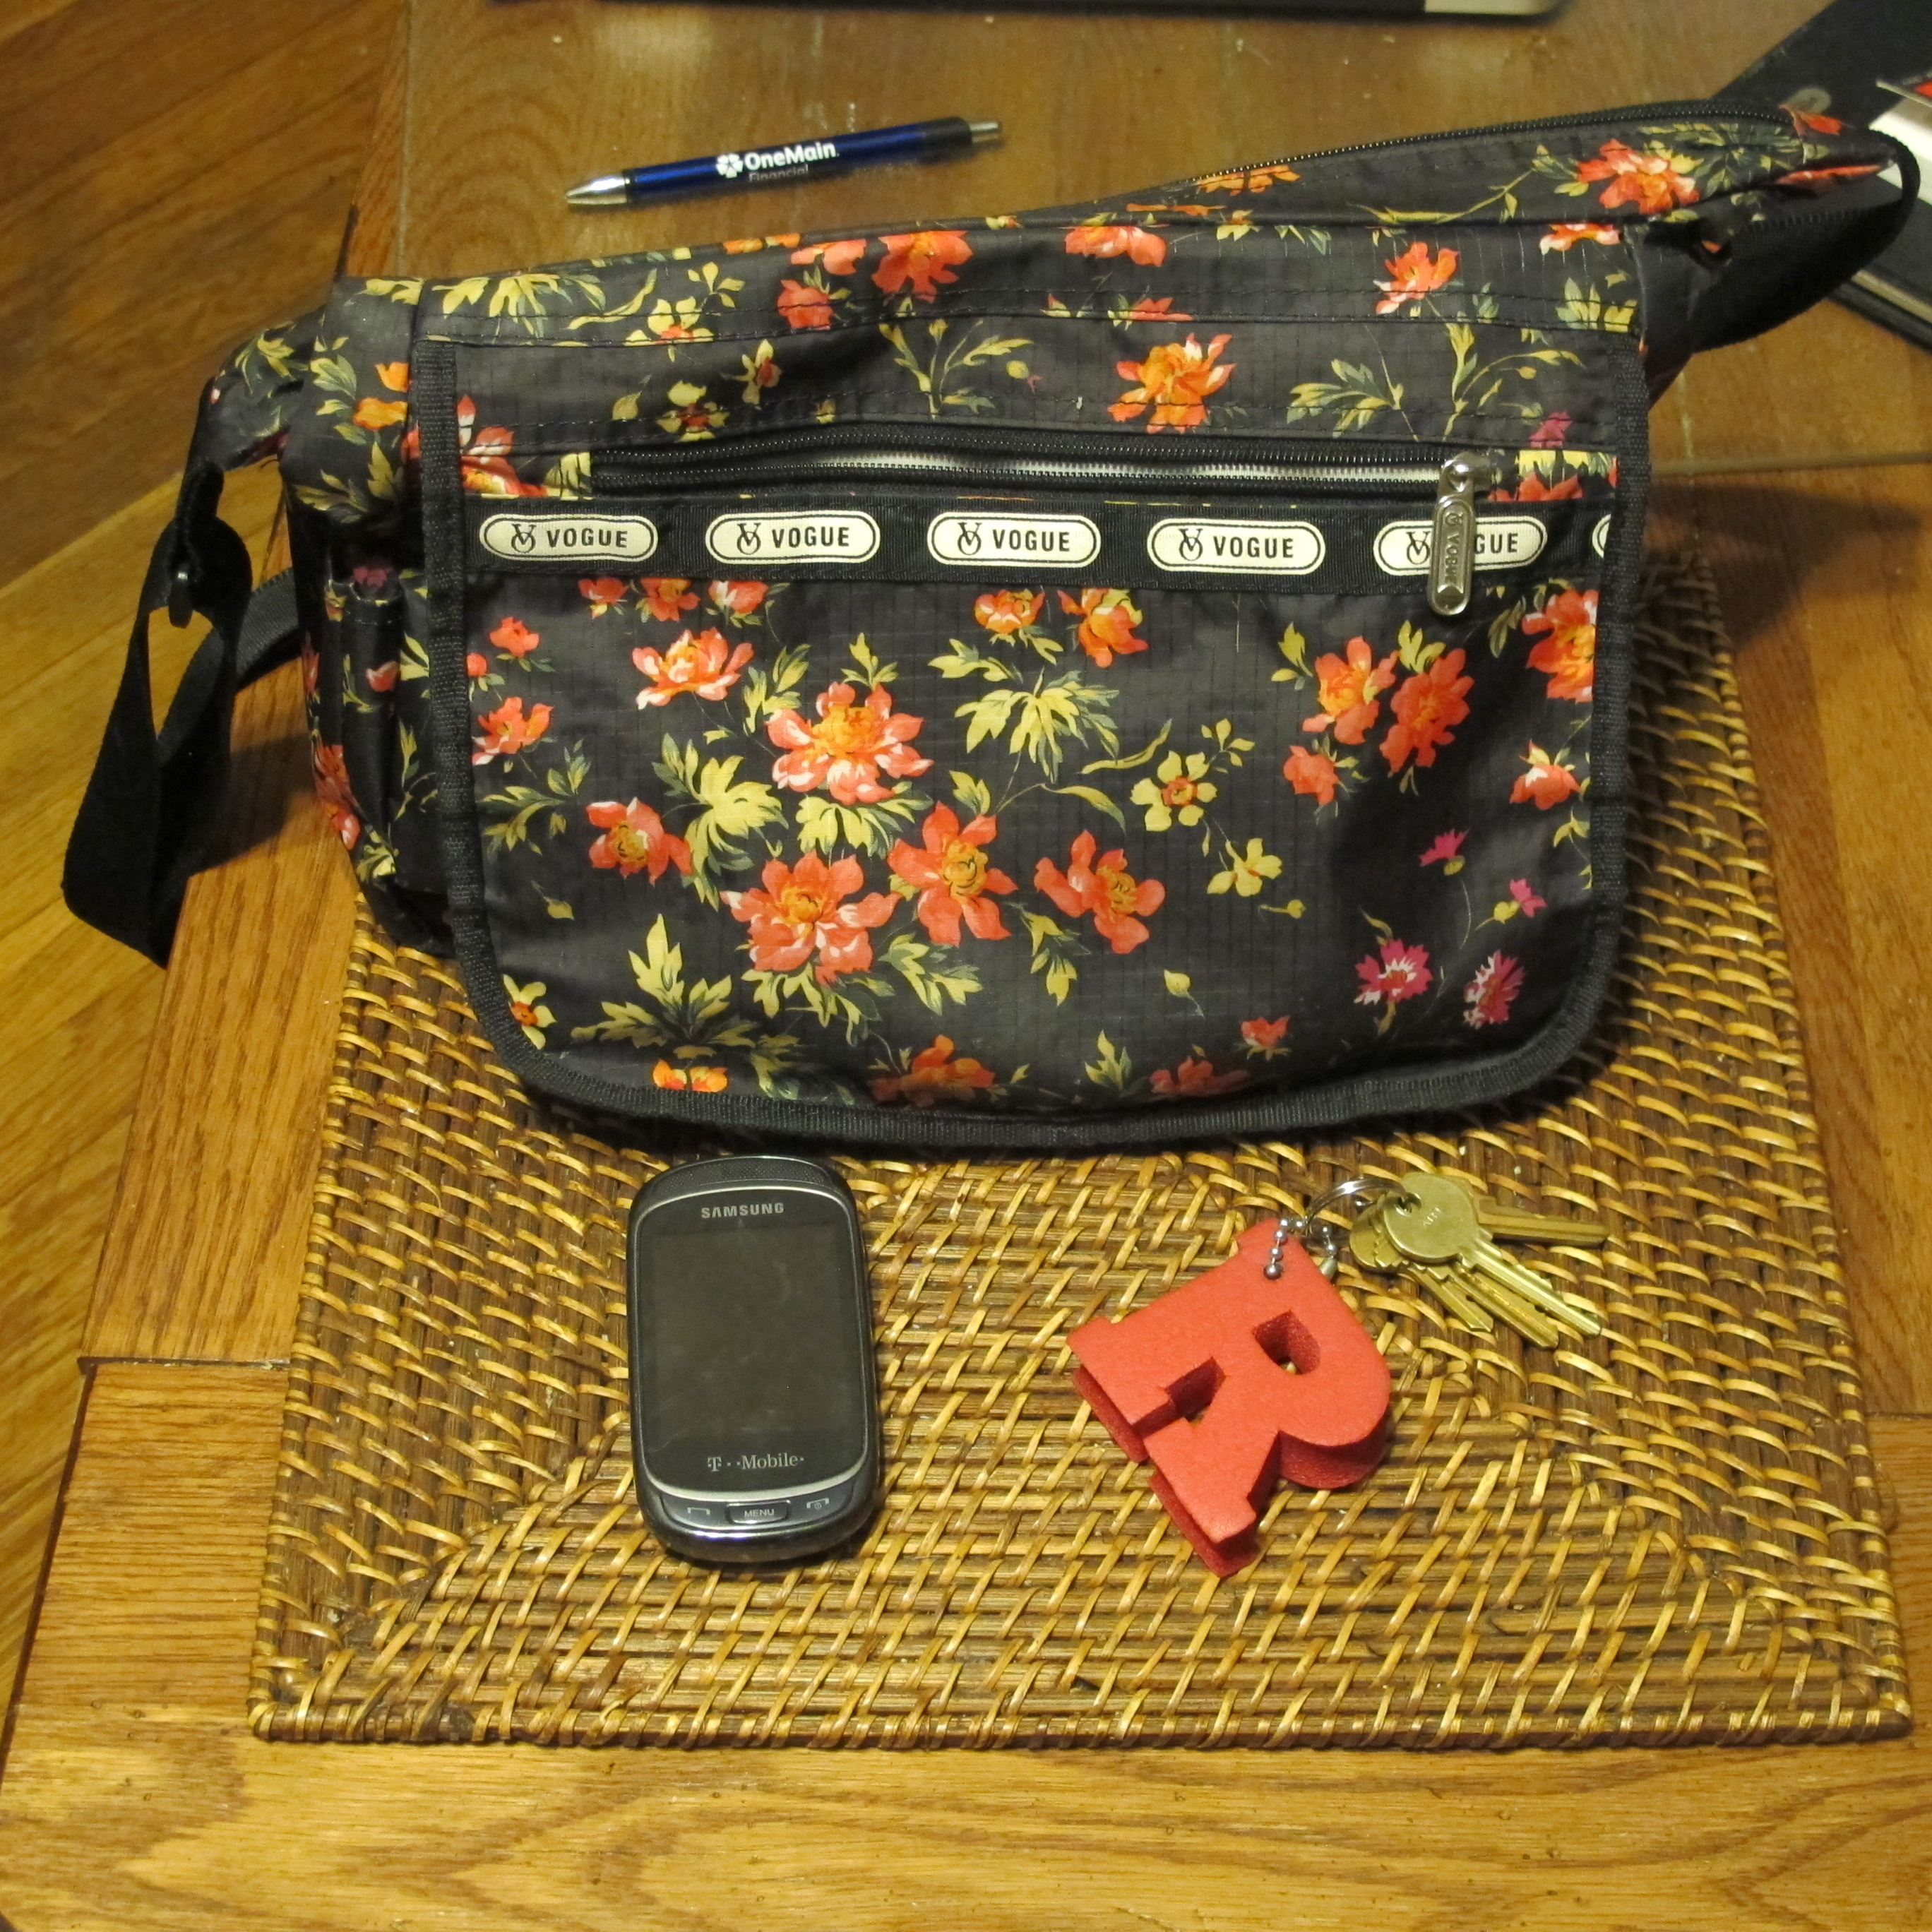 My keys, cellphone, and handbag with zippered compartment showing.